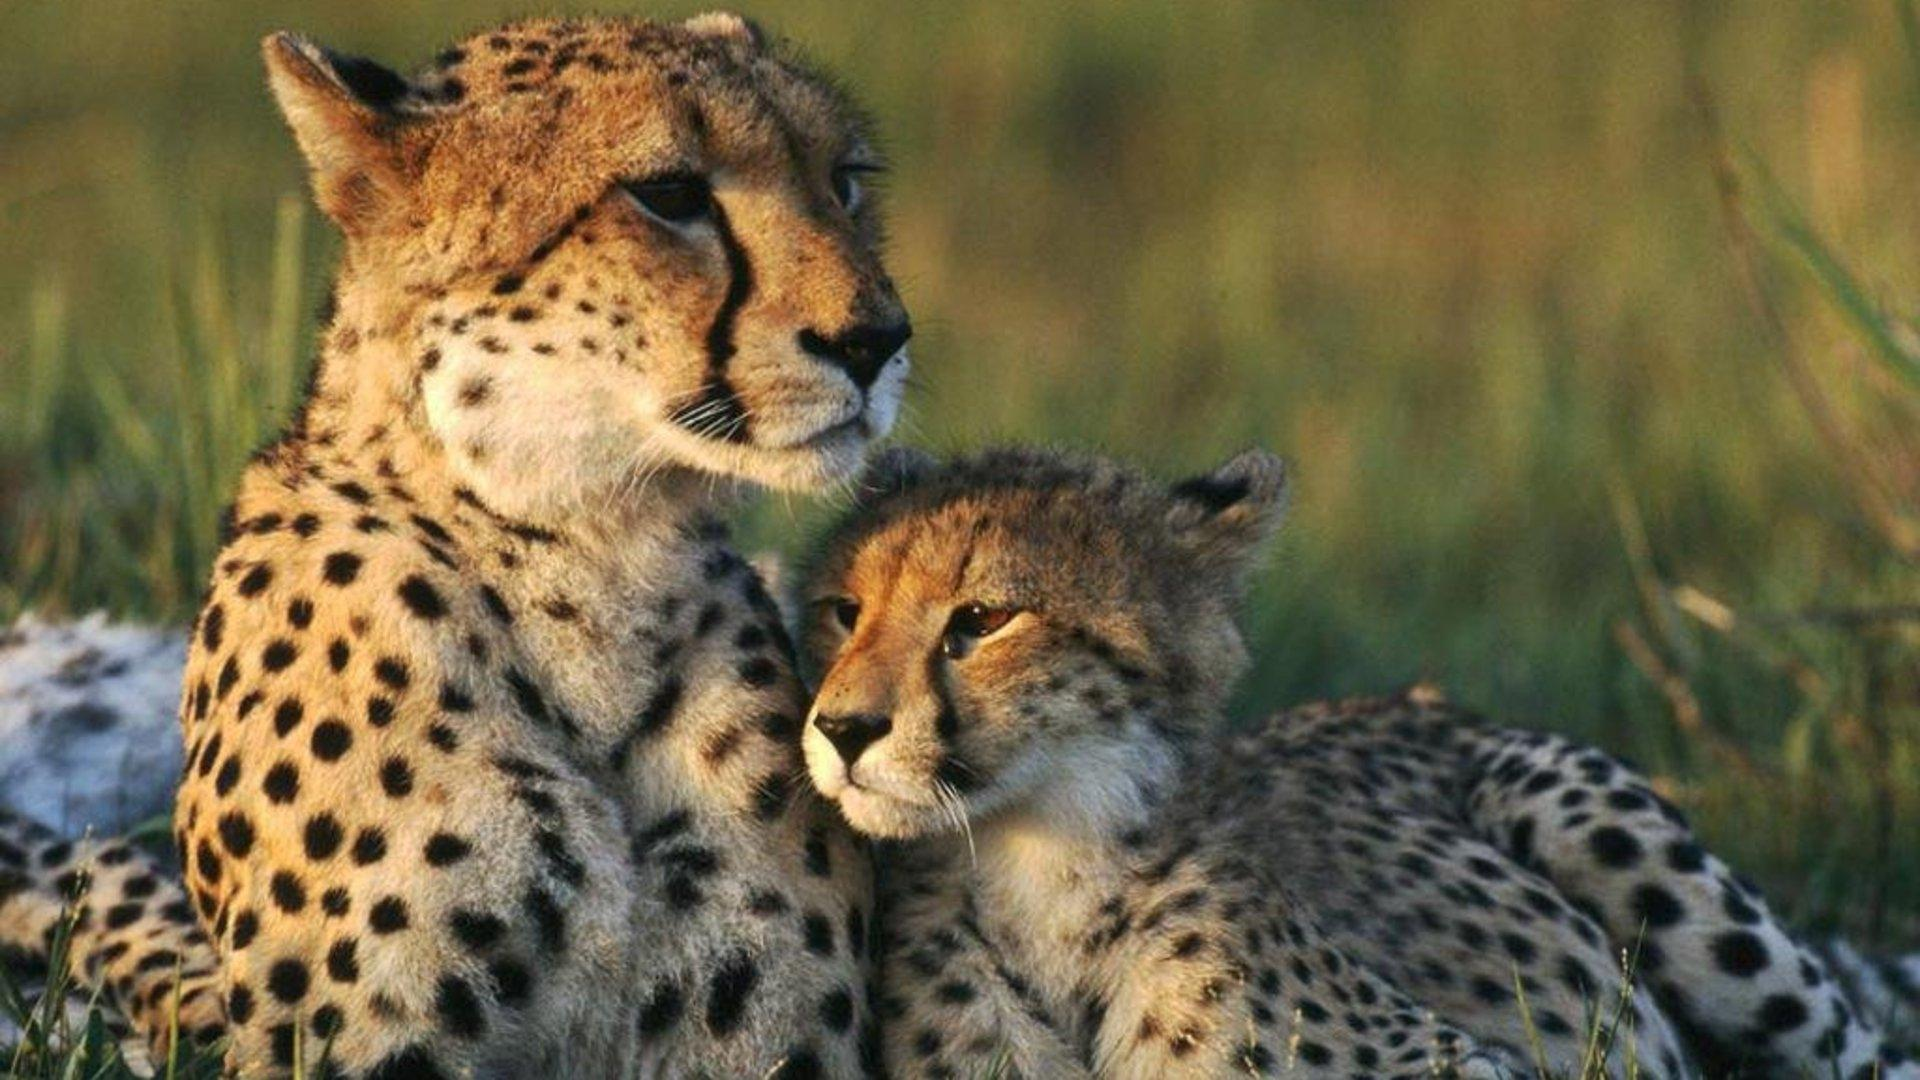 Cute Cheetah Wallpapers Wallpaper Cave